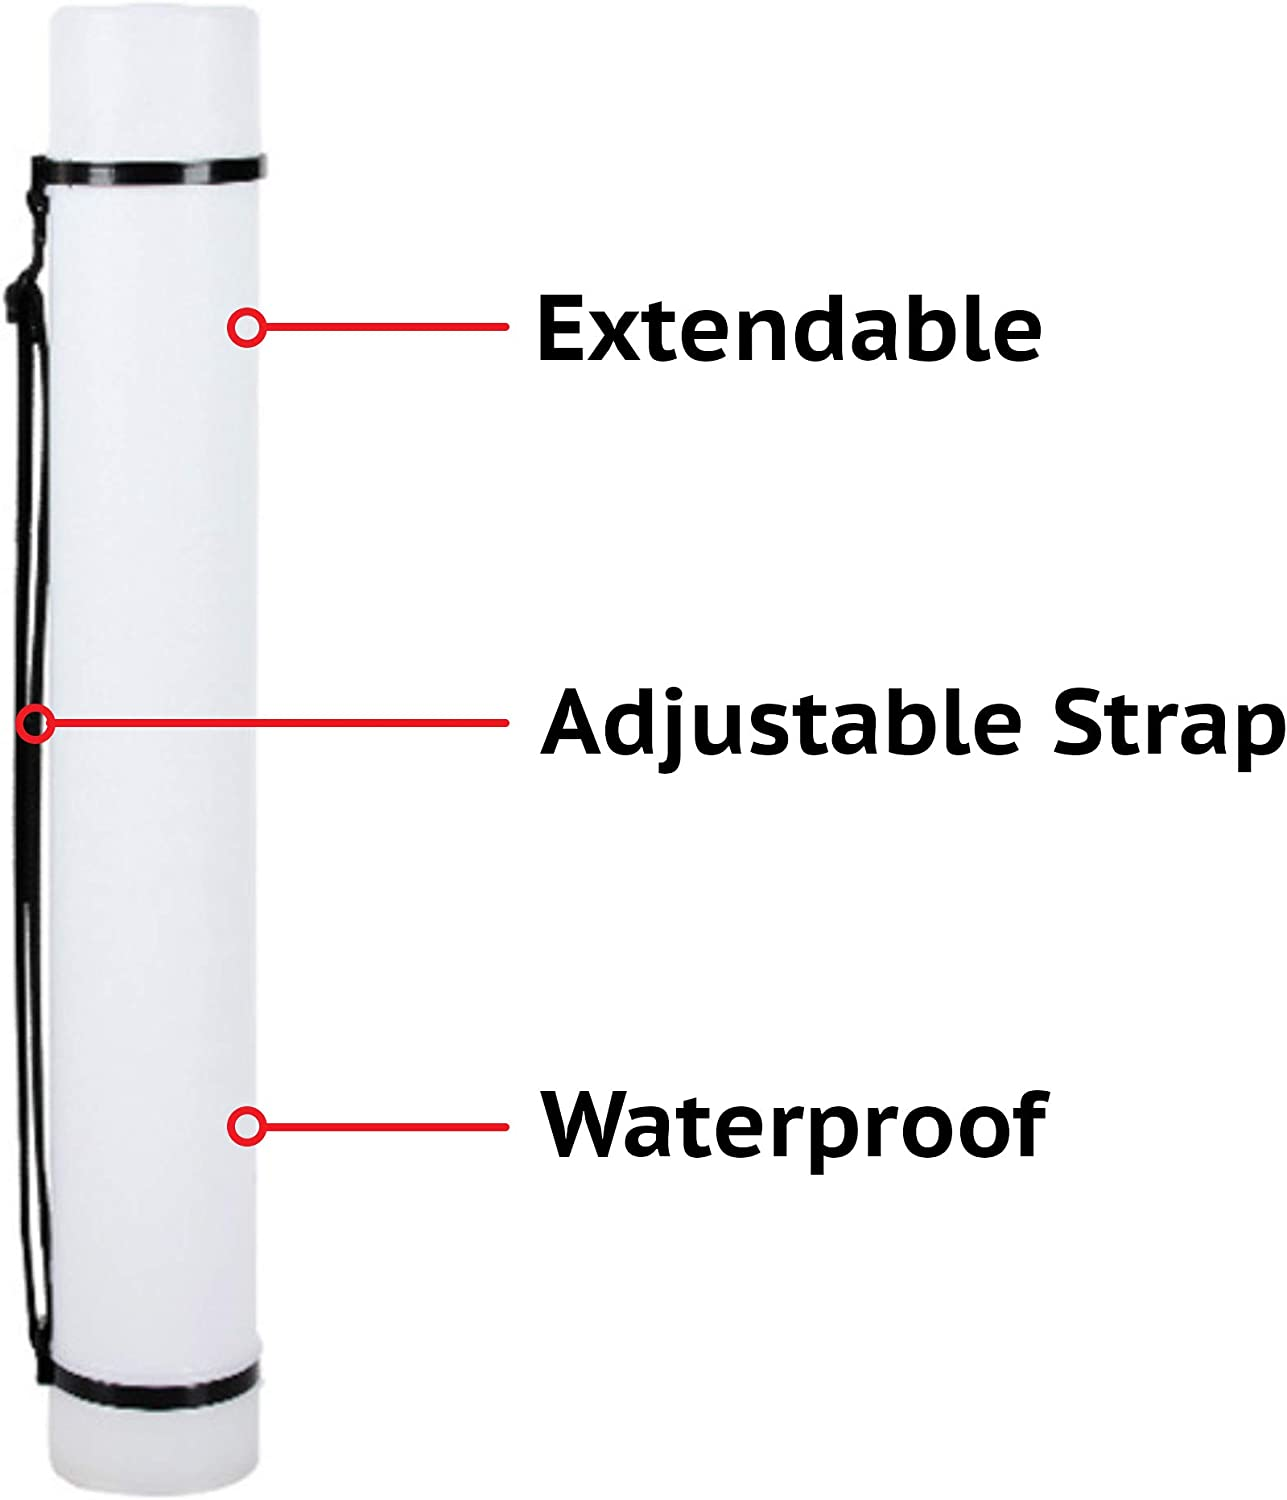 "Blueprints 2-Pack Extendable Poster Tubes Expand from 24.5/"" to 40/"" with Shoulder Strap White Portable Durable Round Storage Cases with Lids and Labels Drawings and Art Carry Documents"